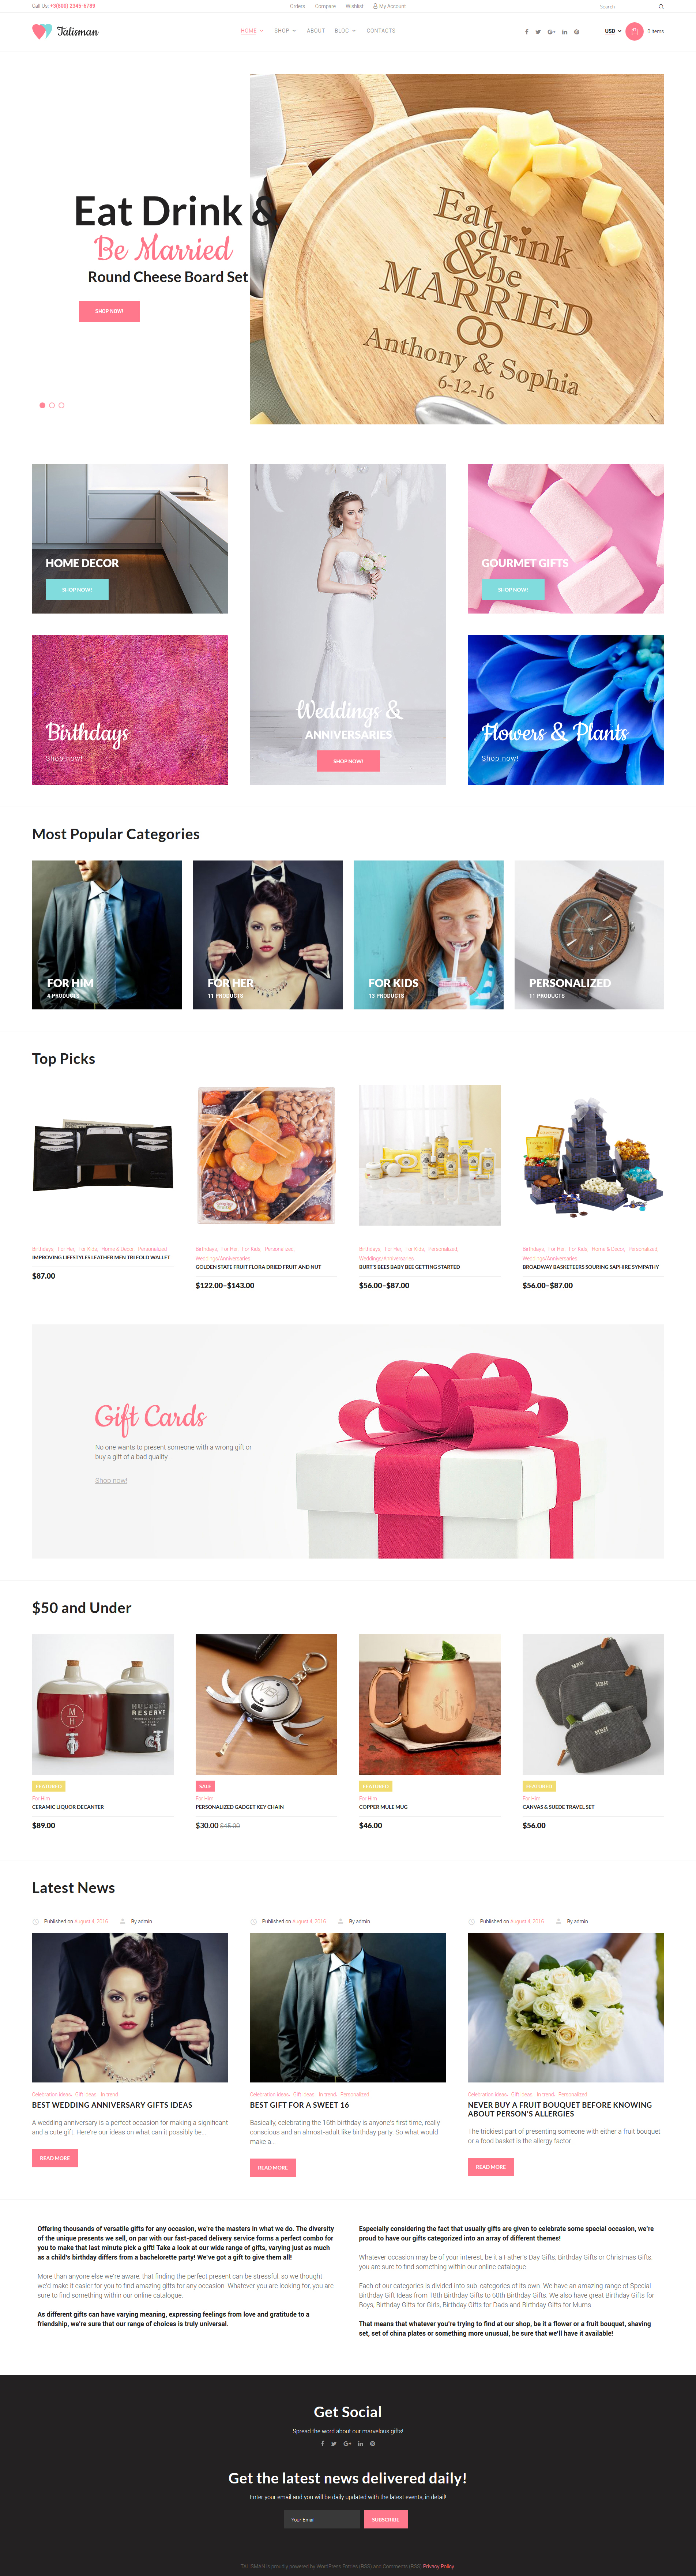 Talisman - Gifts Store Responsive №59045 - скриншот